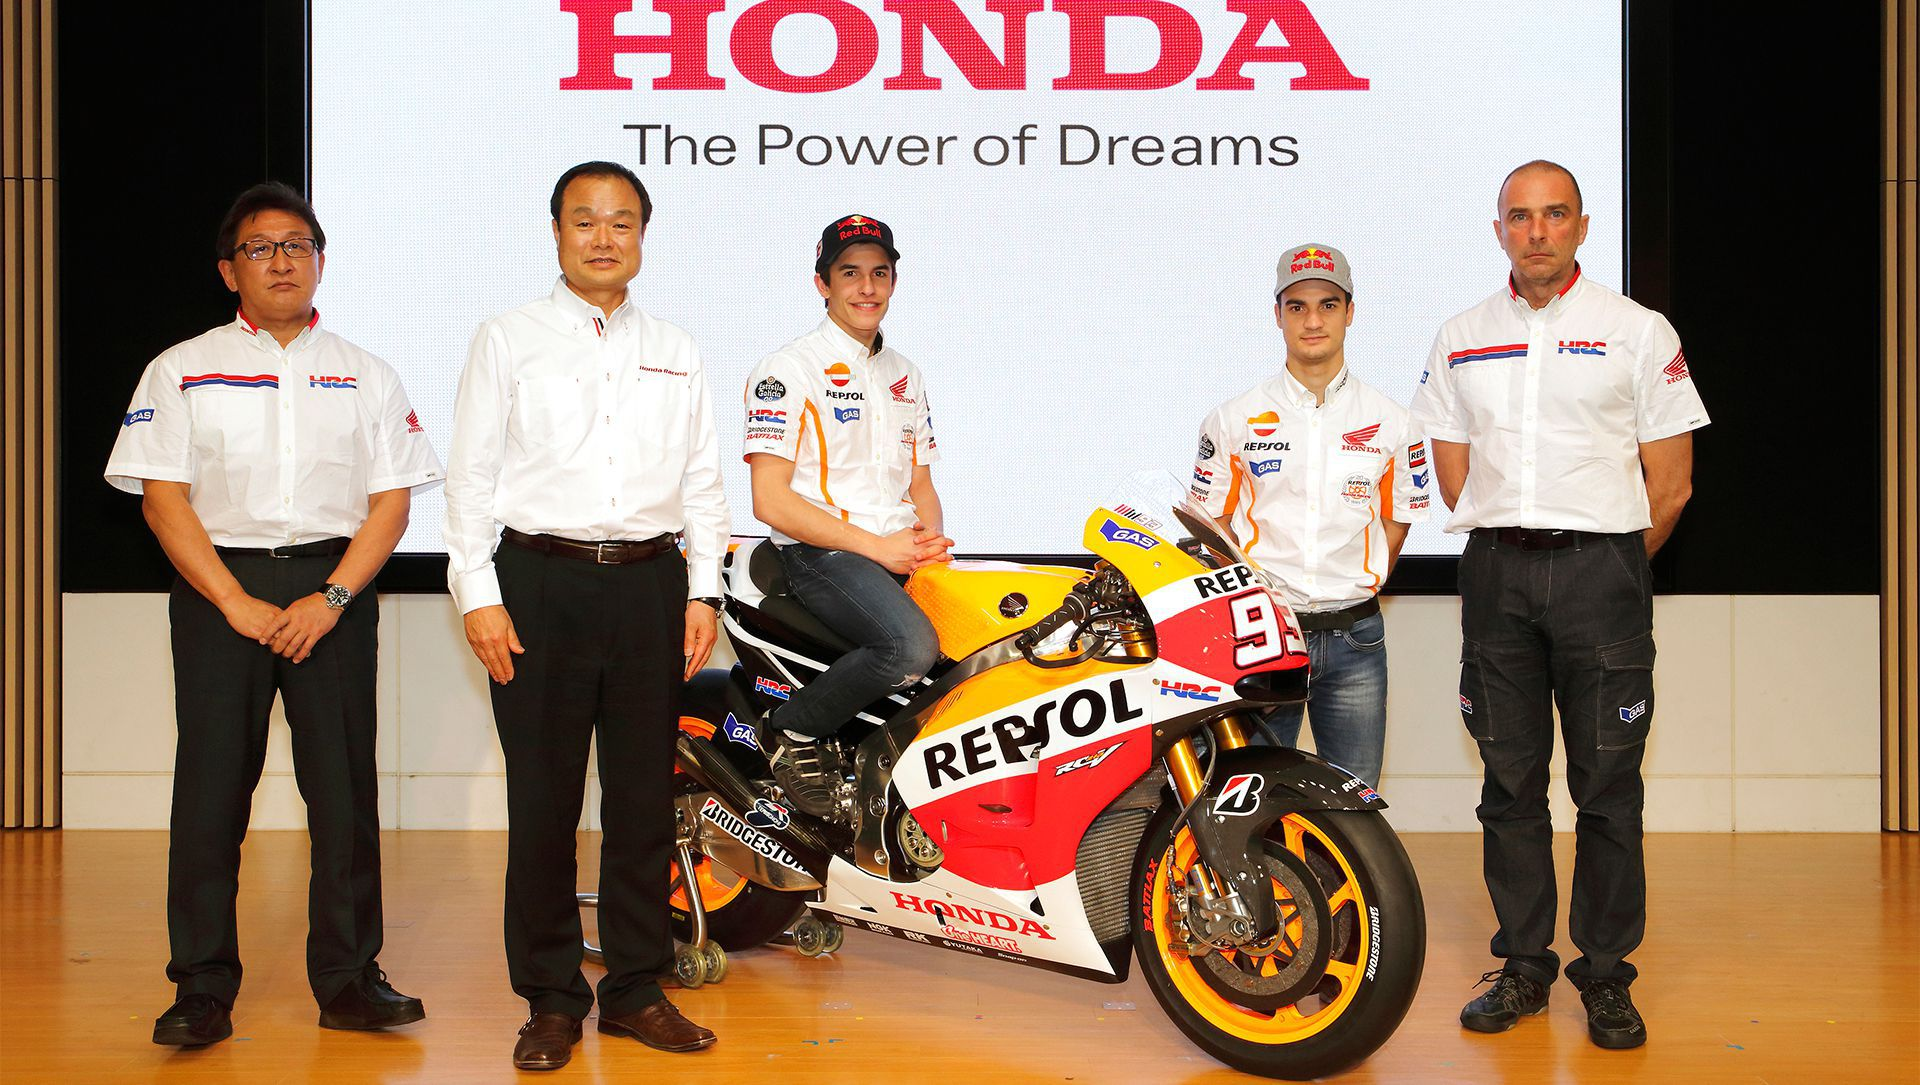 discuss importance of globalization to honda motors Honda motor company, ltd is a japanese public multinational conglomerate corporation primarily known as a manufacturer of automobiles, aircraft, motorcycles, and power equipment honda has been the world's largest motorcycle manufacturer since 1959.